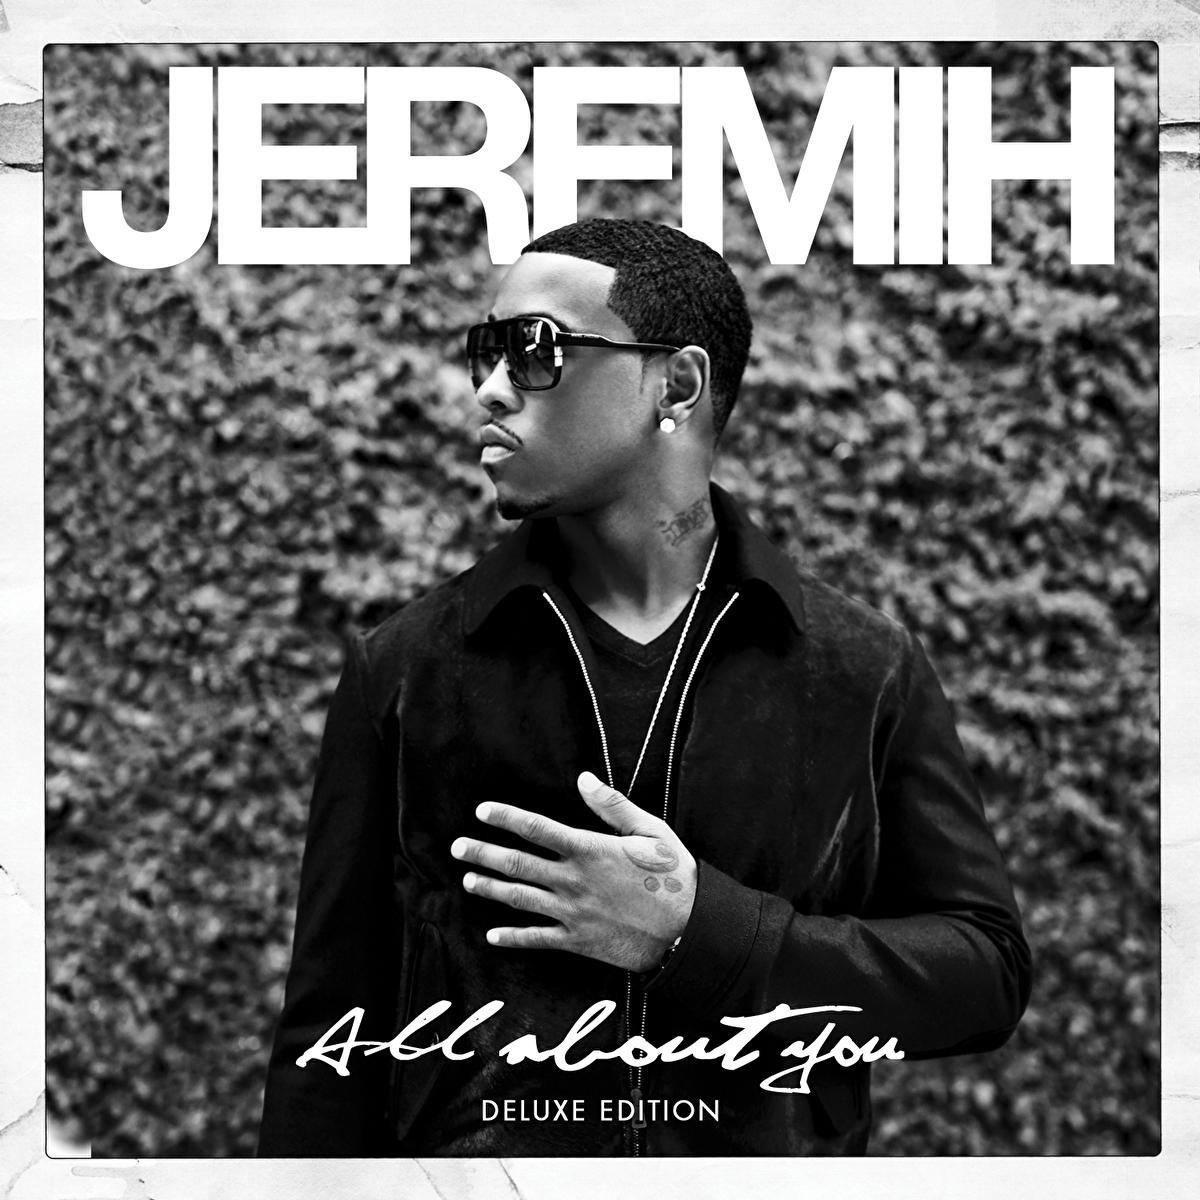 Jeremih - Down On Me (Ft. 50 Cent)  早年好歌